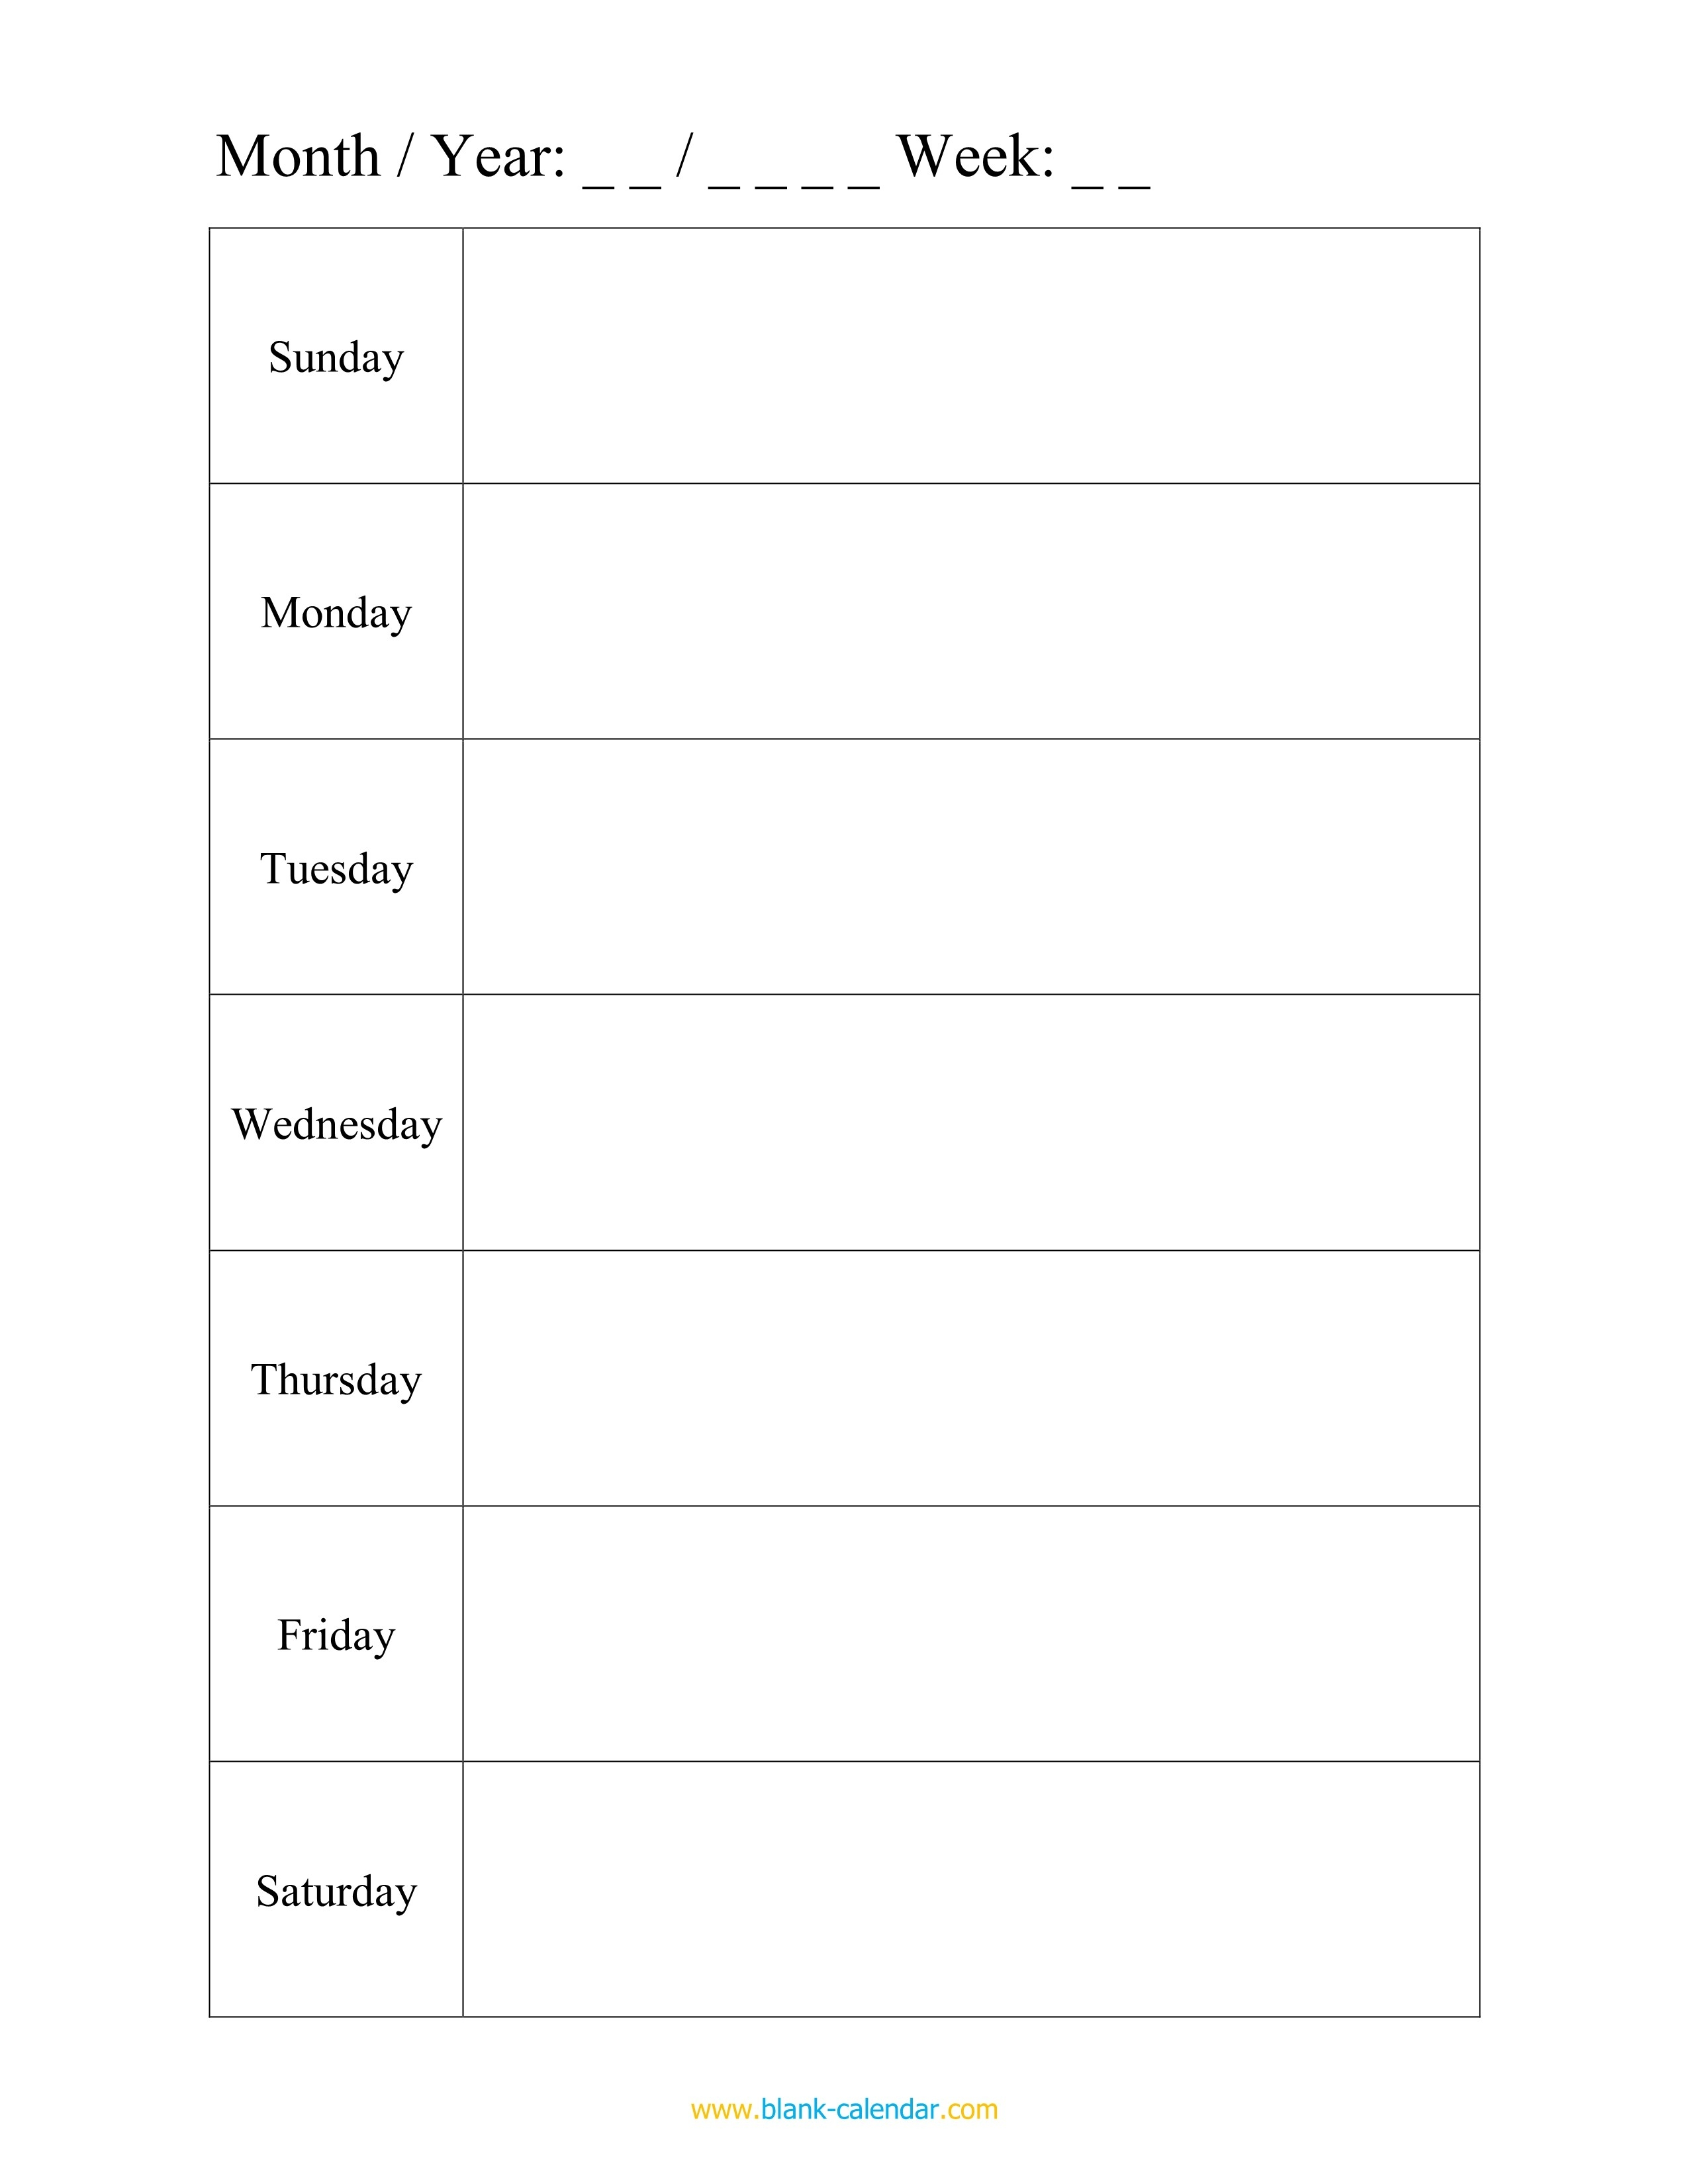 012 Template Ideas 20Weekly Schedule Planner Templates Word-Monday Through Friday Planning Template